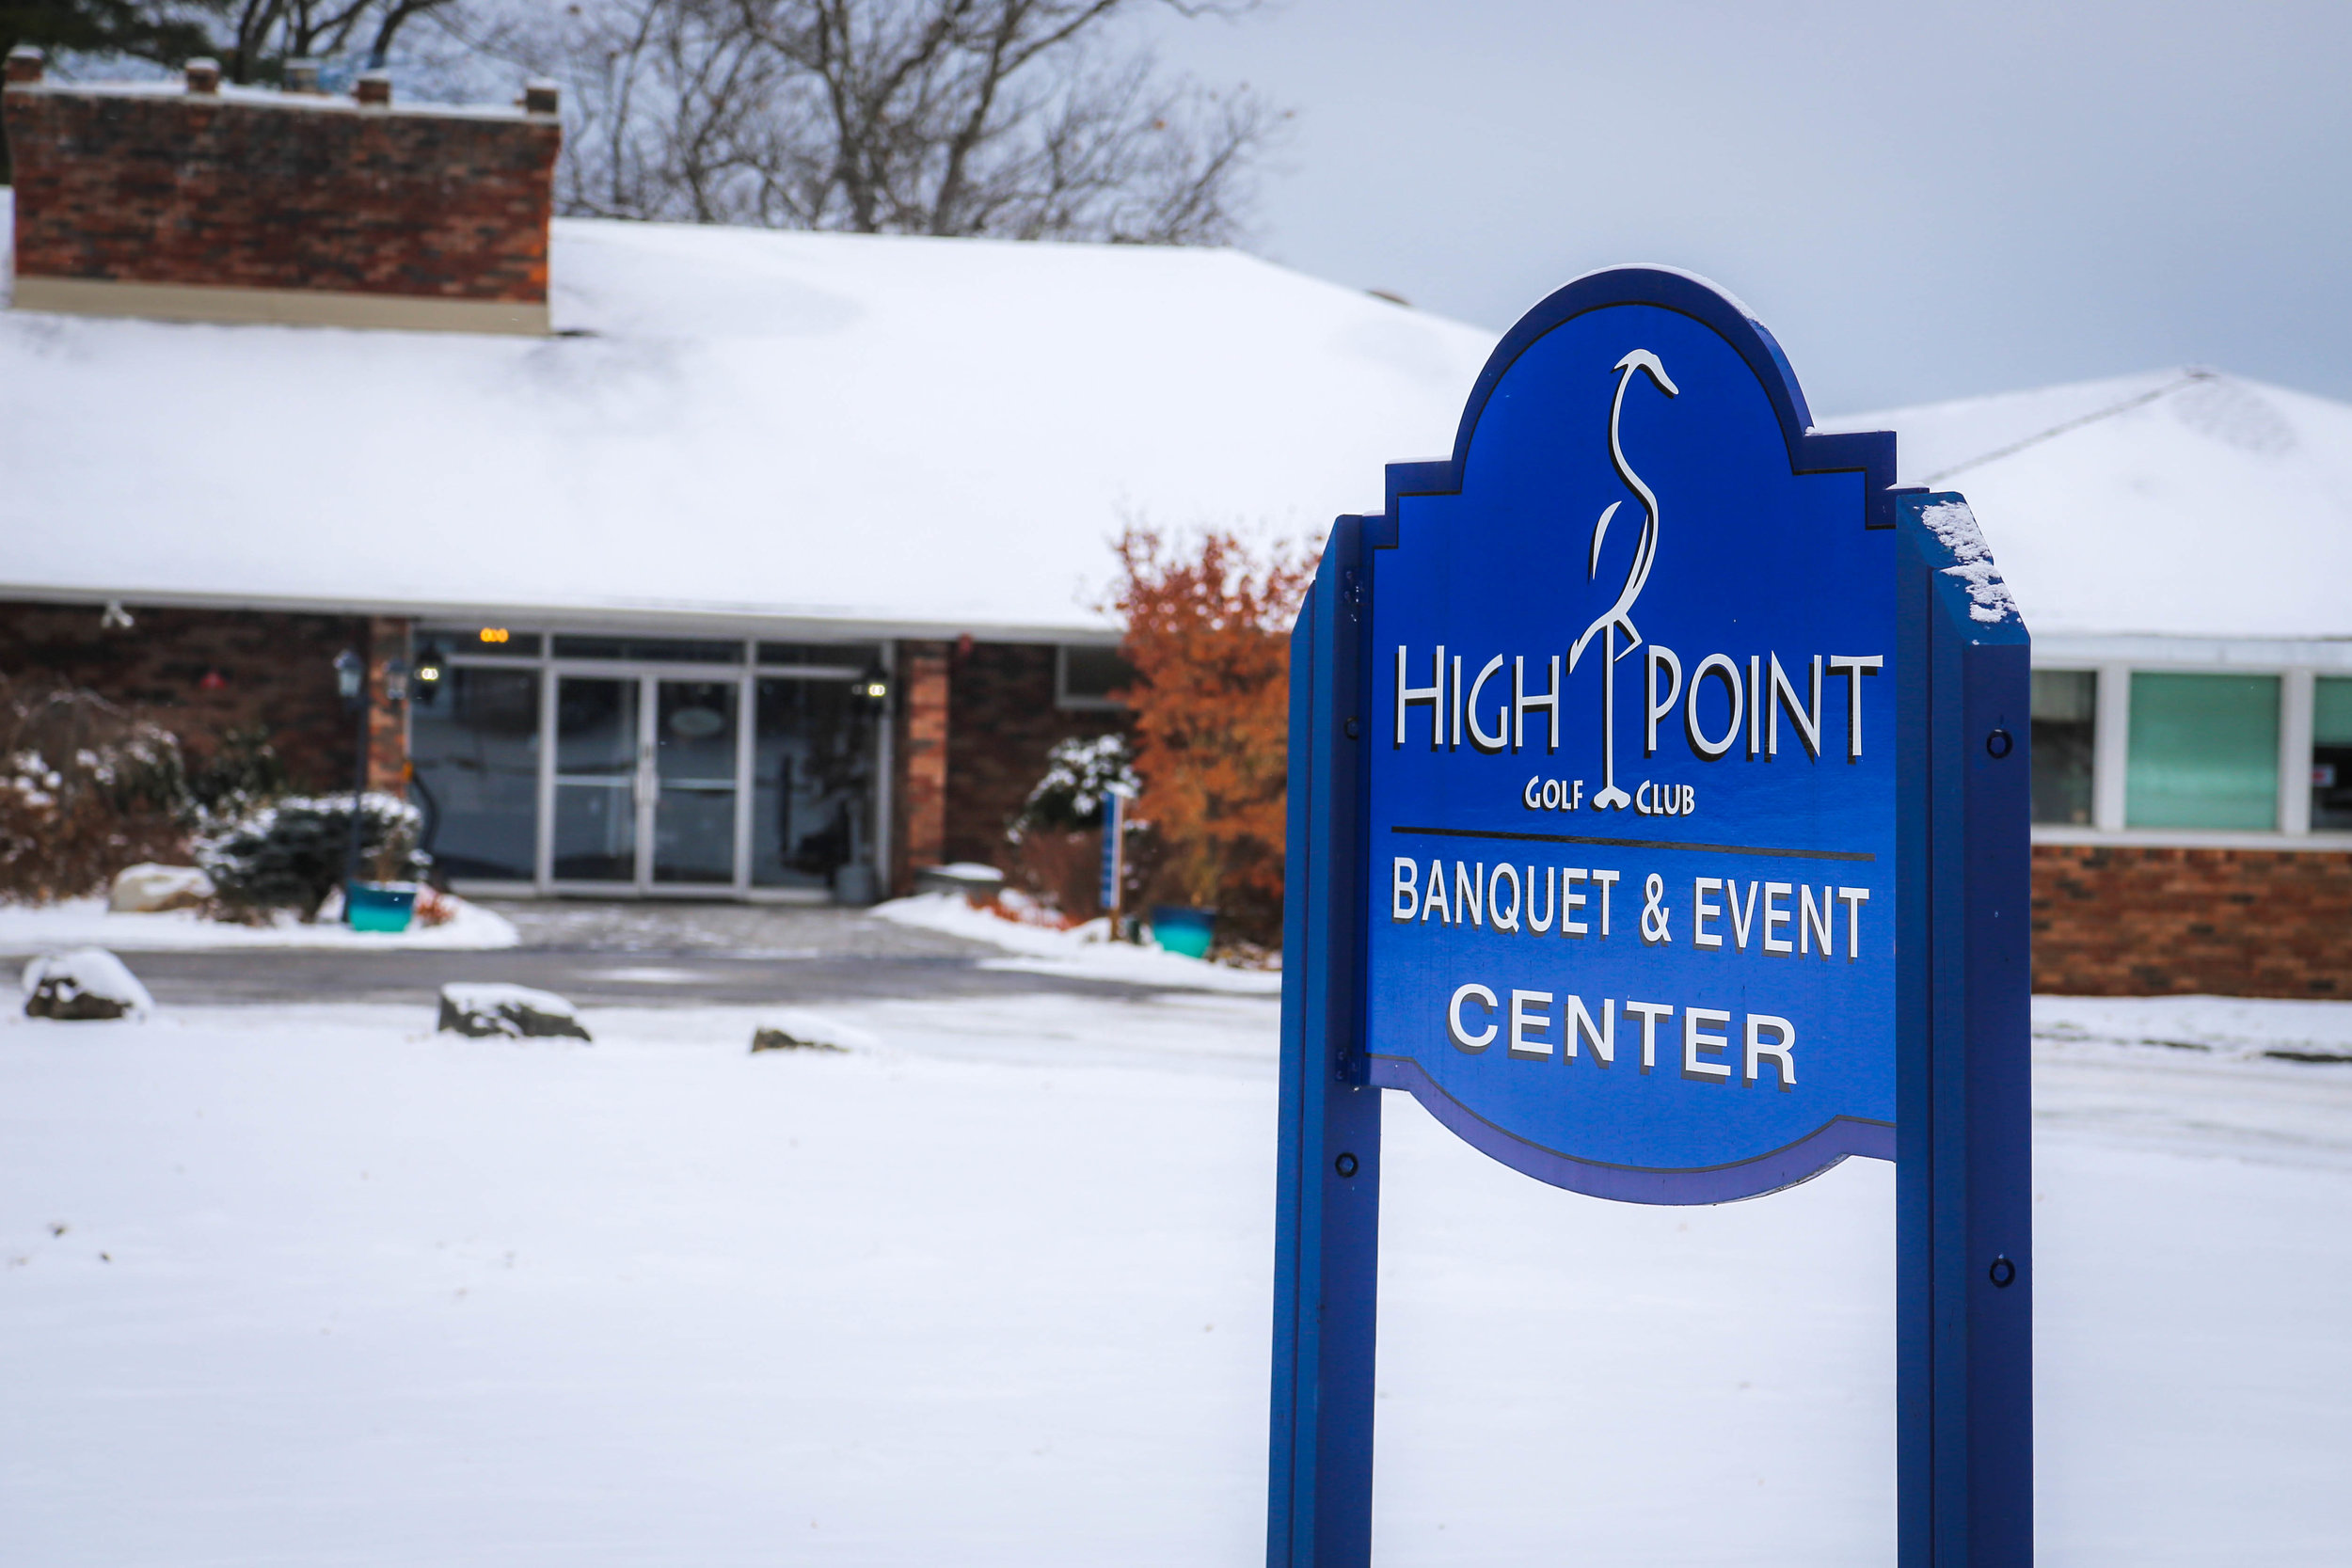 High Point Banquet & Event Center.jpg